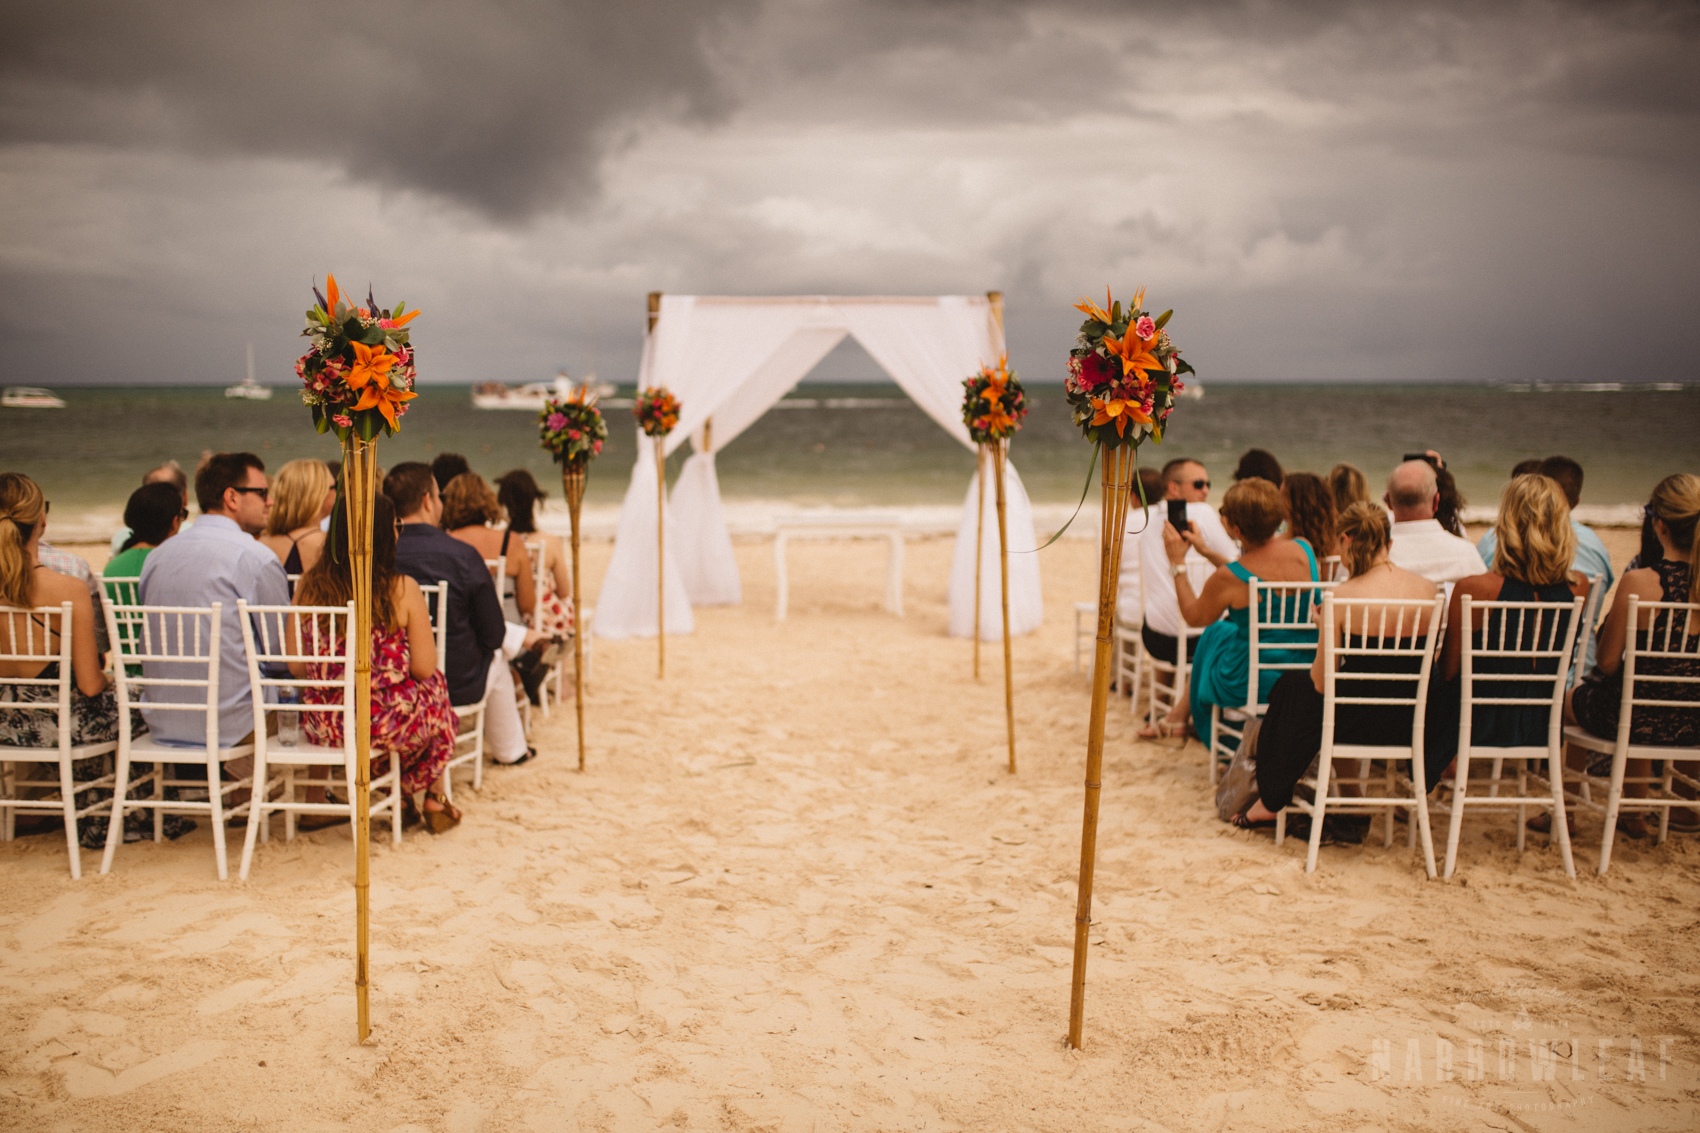 punta-cana-dominican-republic-destination-wedding-beach-ceremony-6642.jpg